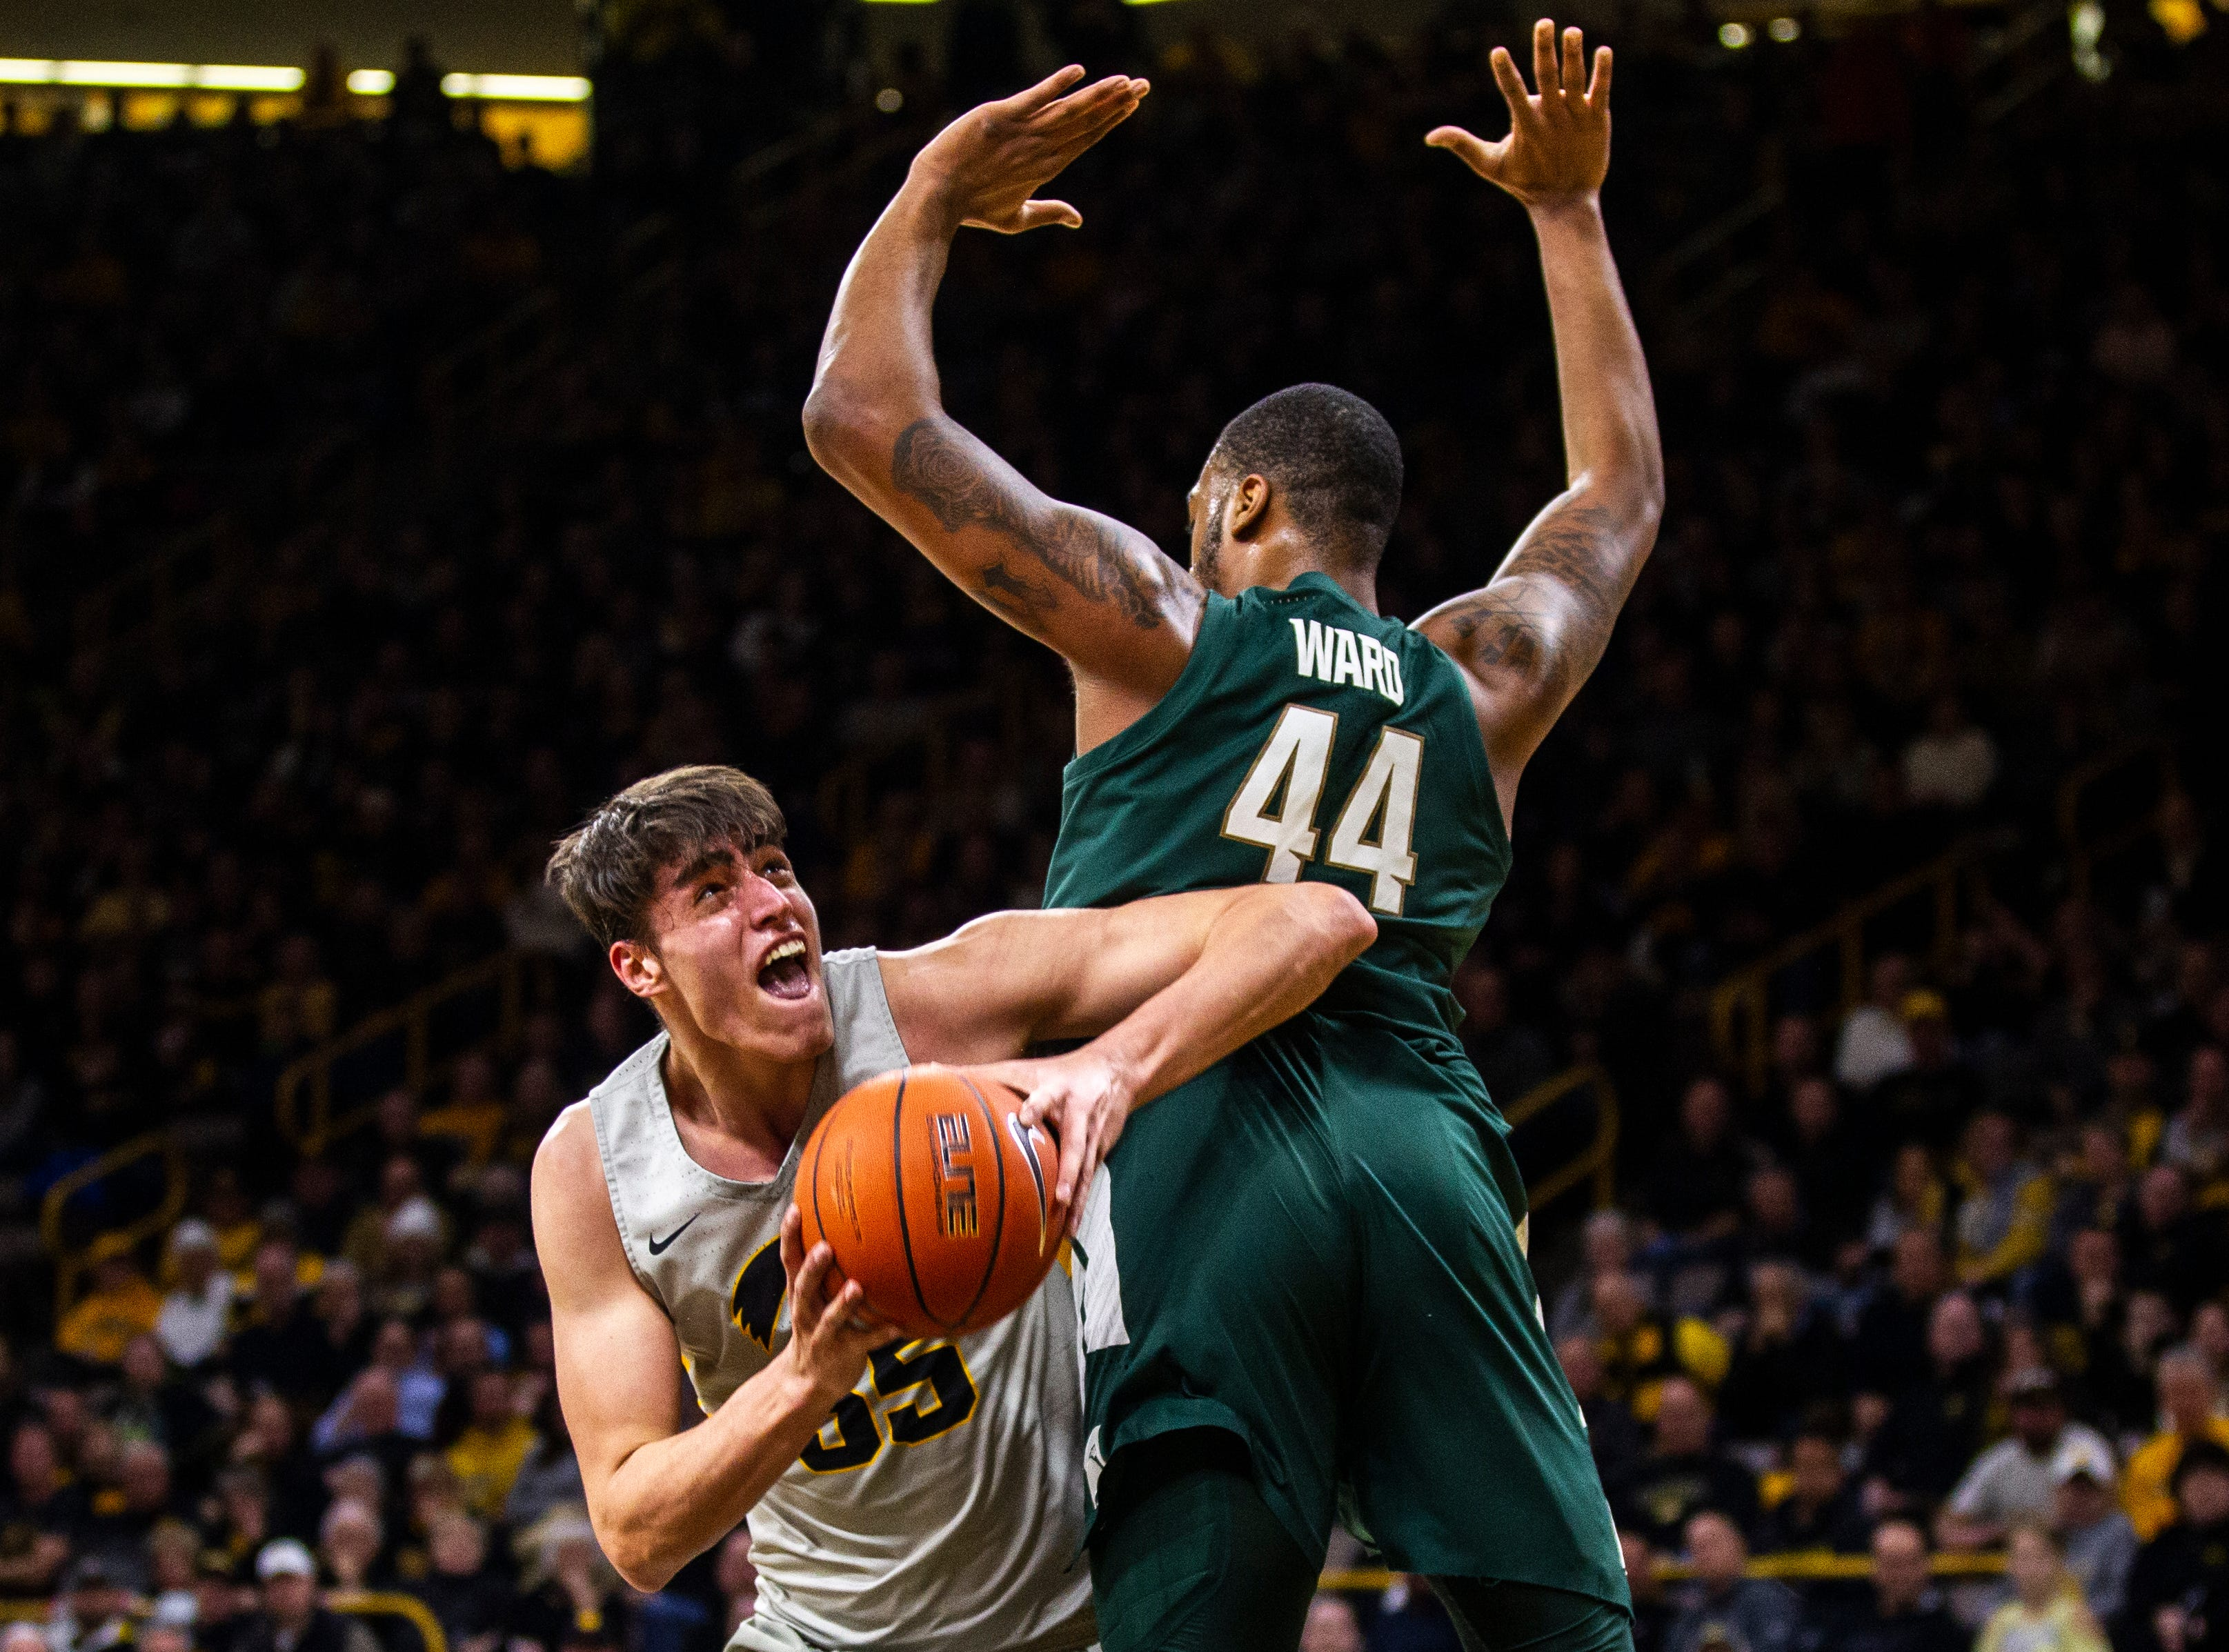 Iowa forward Luka Garza (55) drives to the basket past Michigan State forward Nick Ward (44) during a NCAA Big Ten Conference men's basketball game on Thursday, Jan. 24, 2019, at Carver-Hawkeye Arena in Iowa City, Iowa.